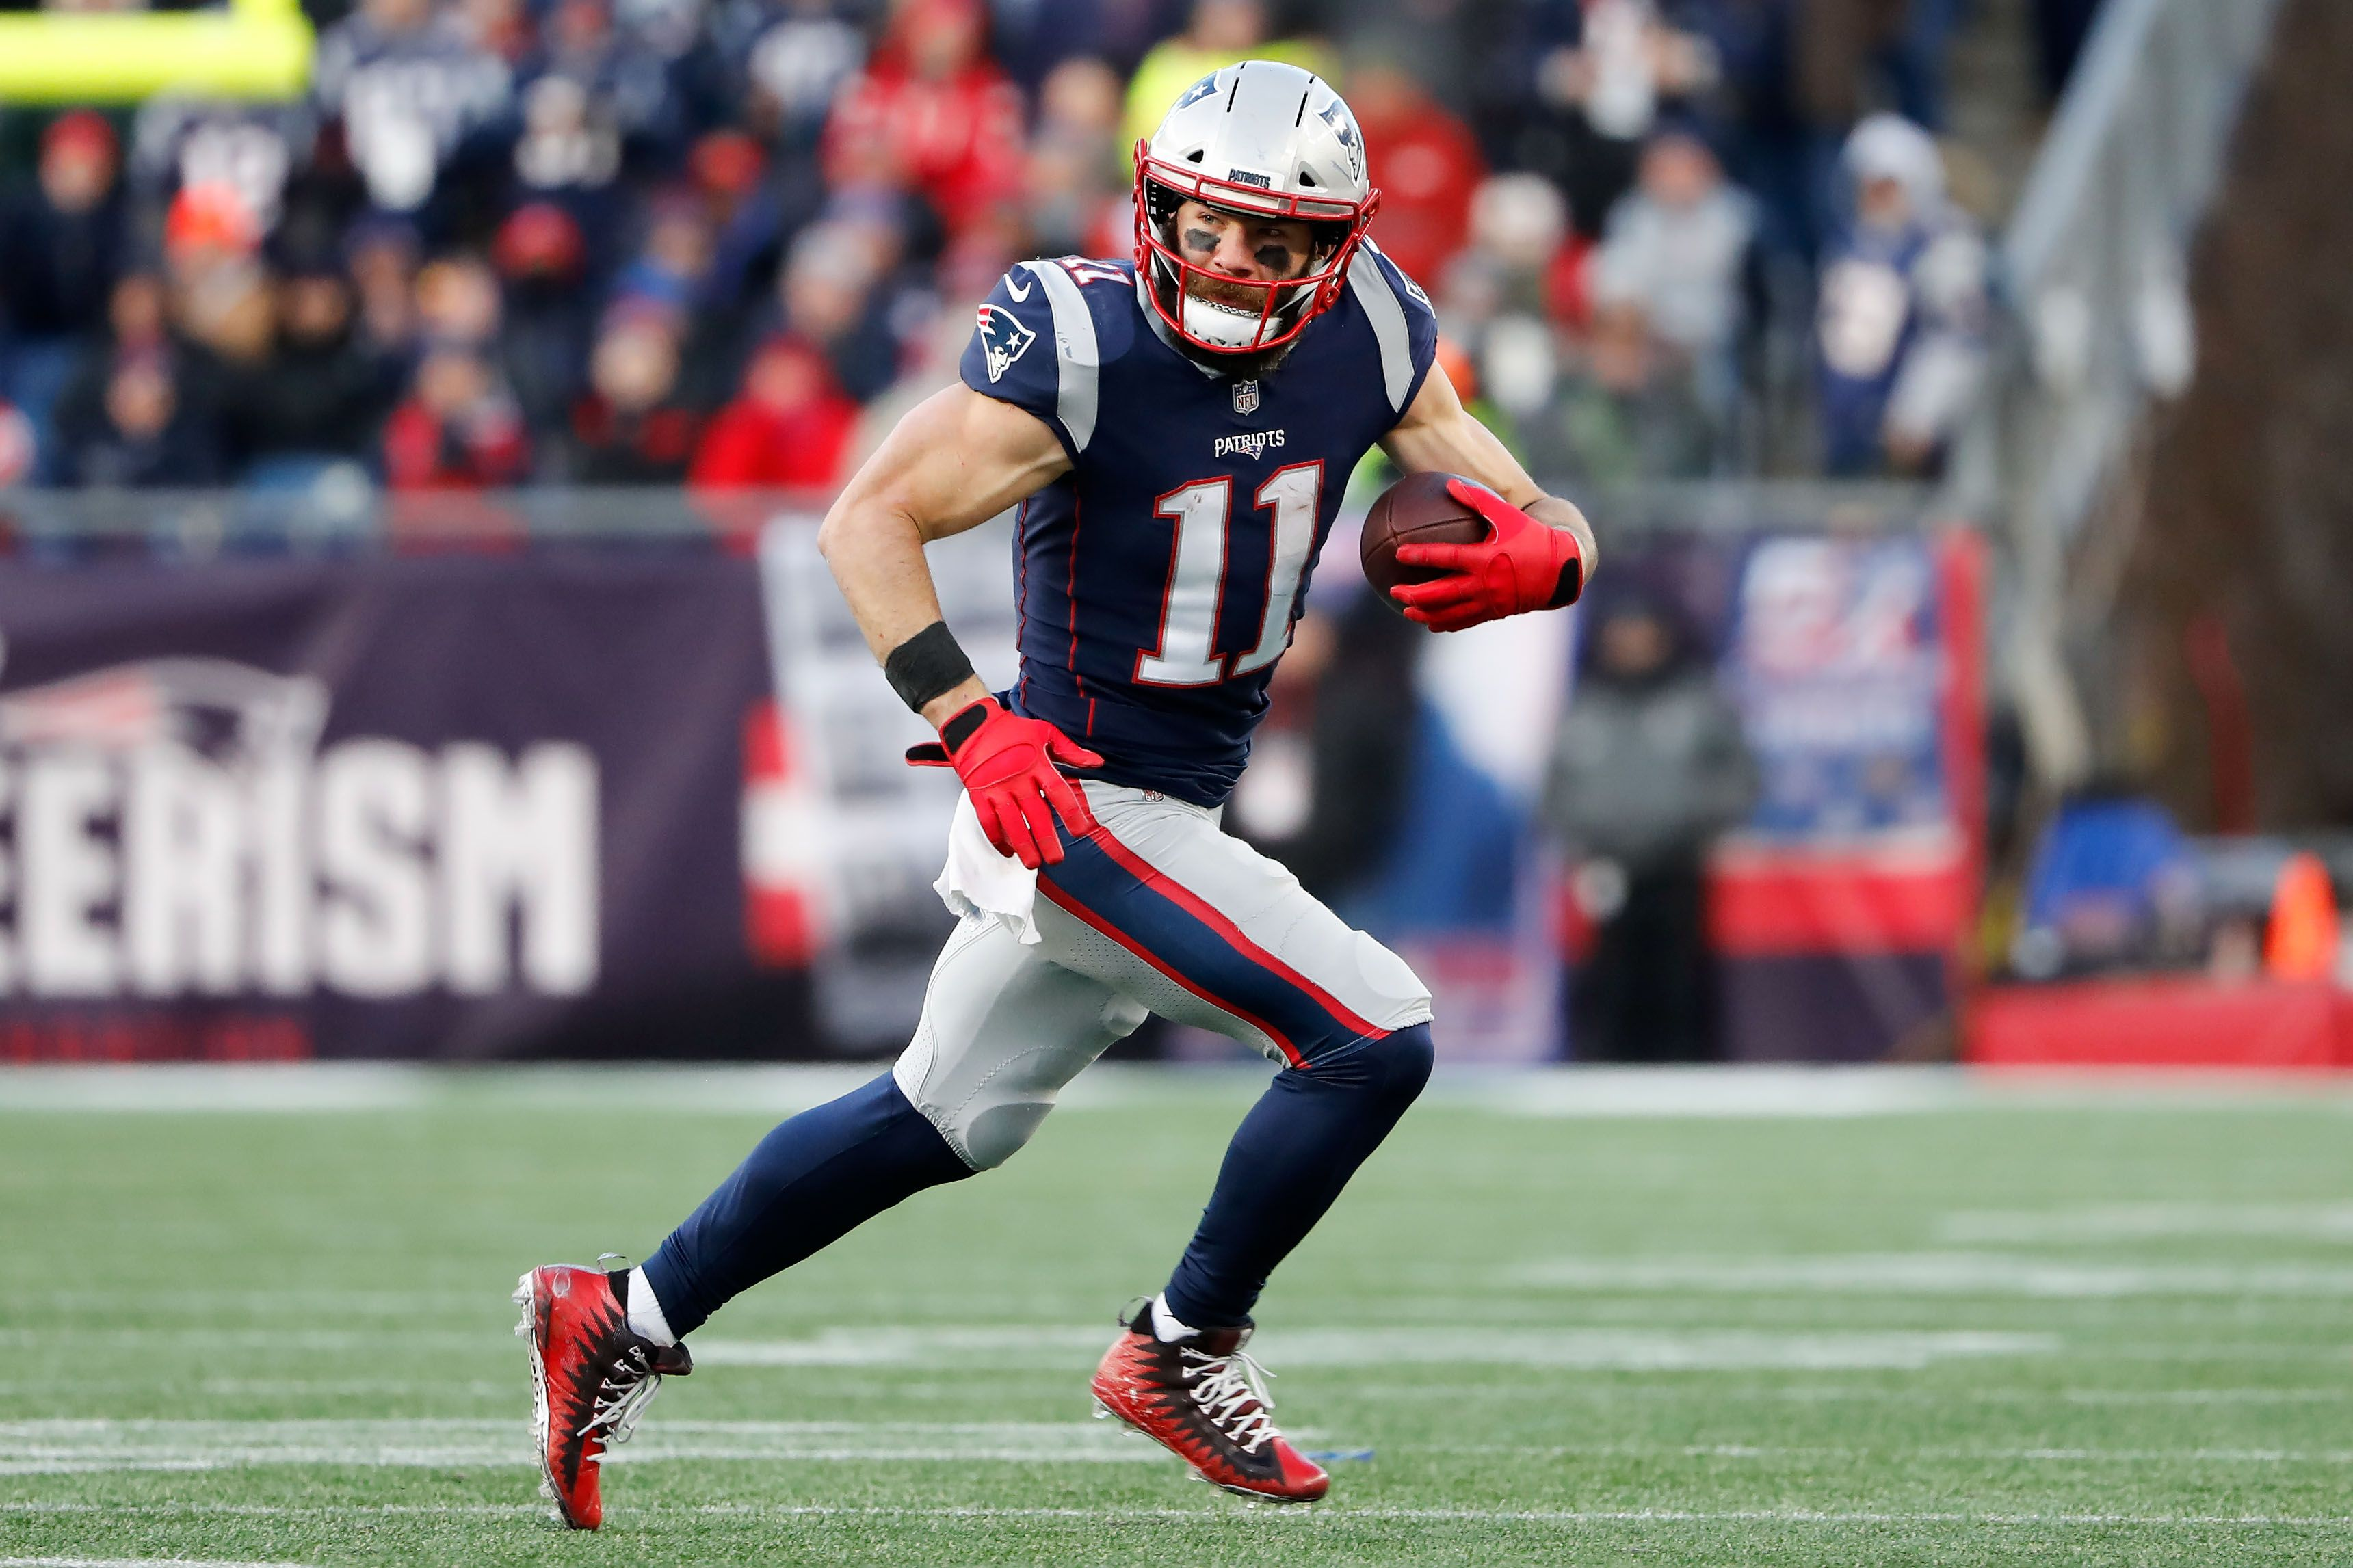 Julian Edelman S Former Coaches Detail His Ability To Perform In Clutch Which Came Well Before Patriots Julian Edelman Edelman Patriots